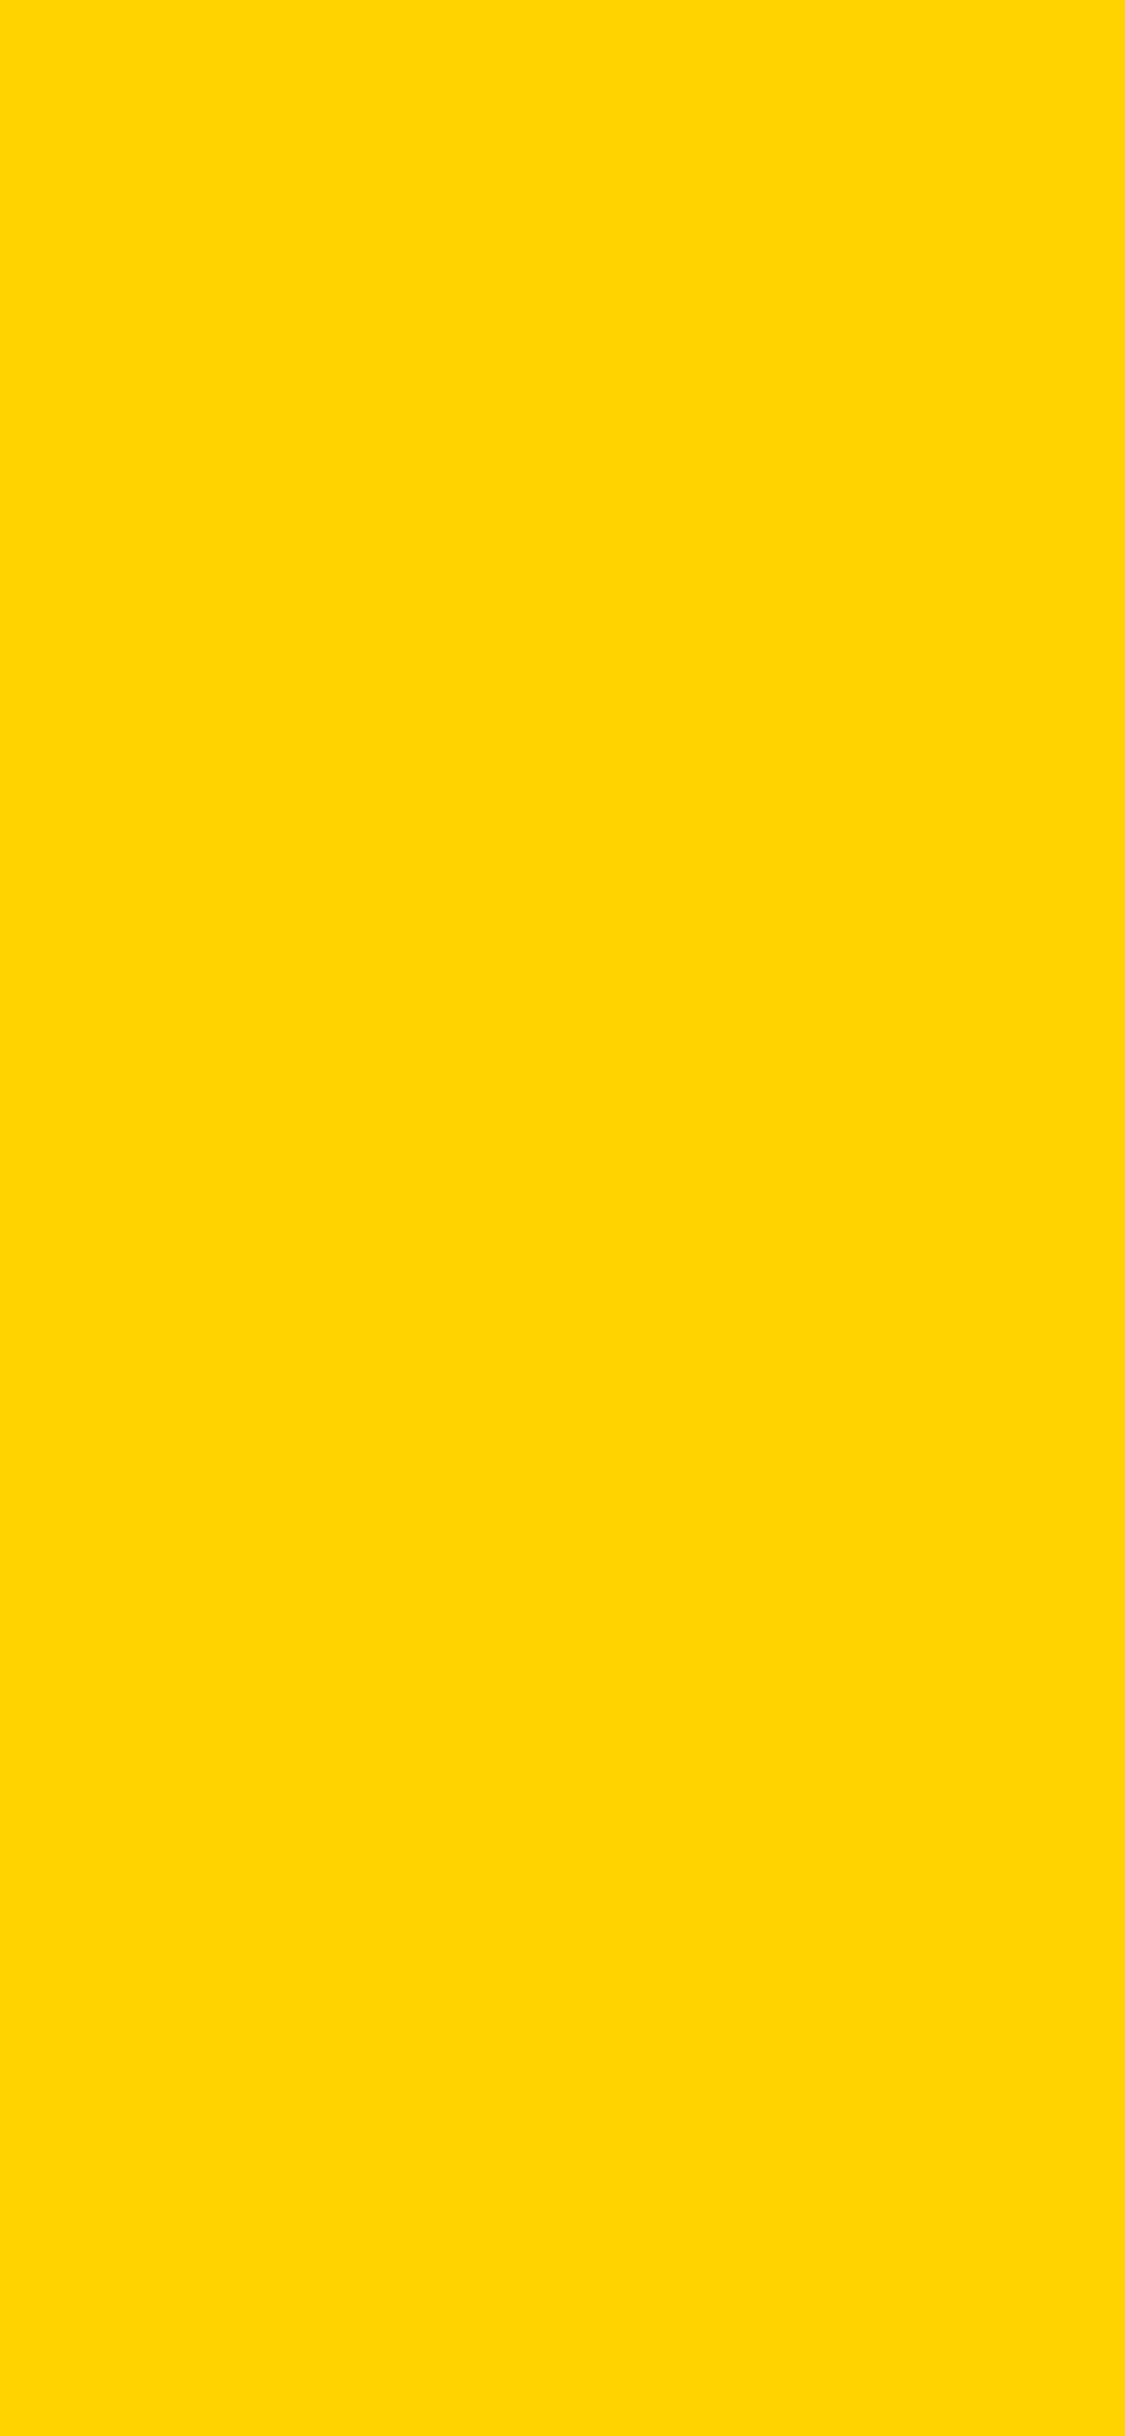 1125x2436 Cyber Yellow Solid Color Background